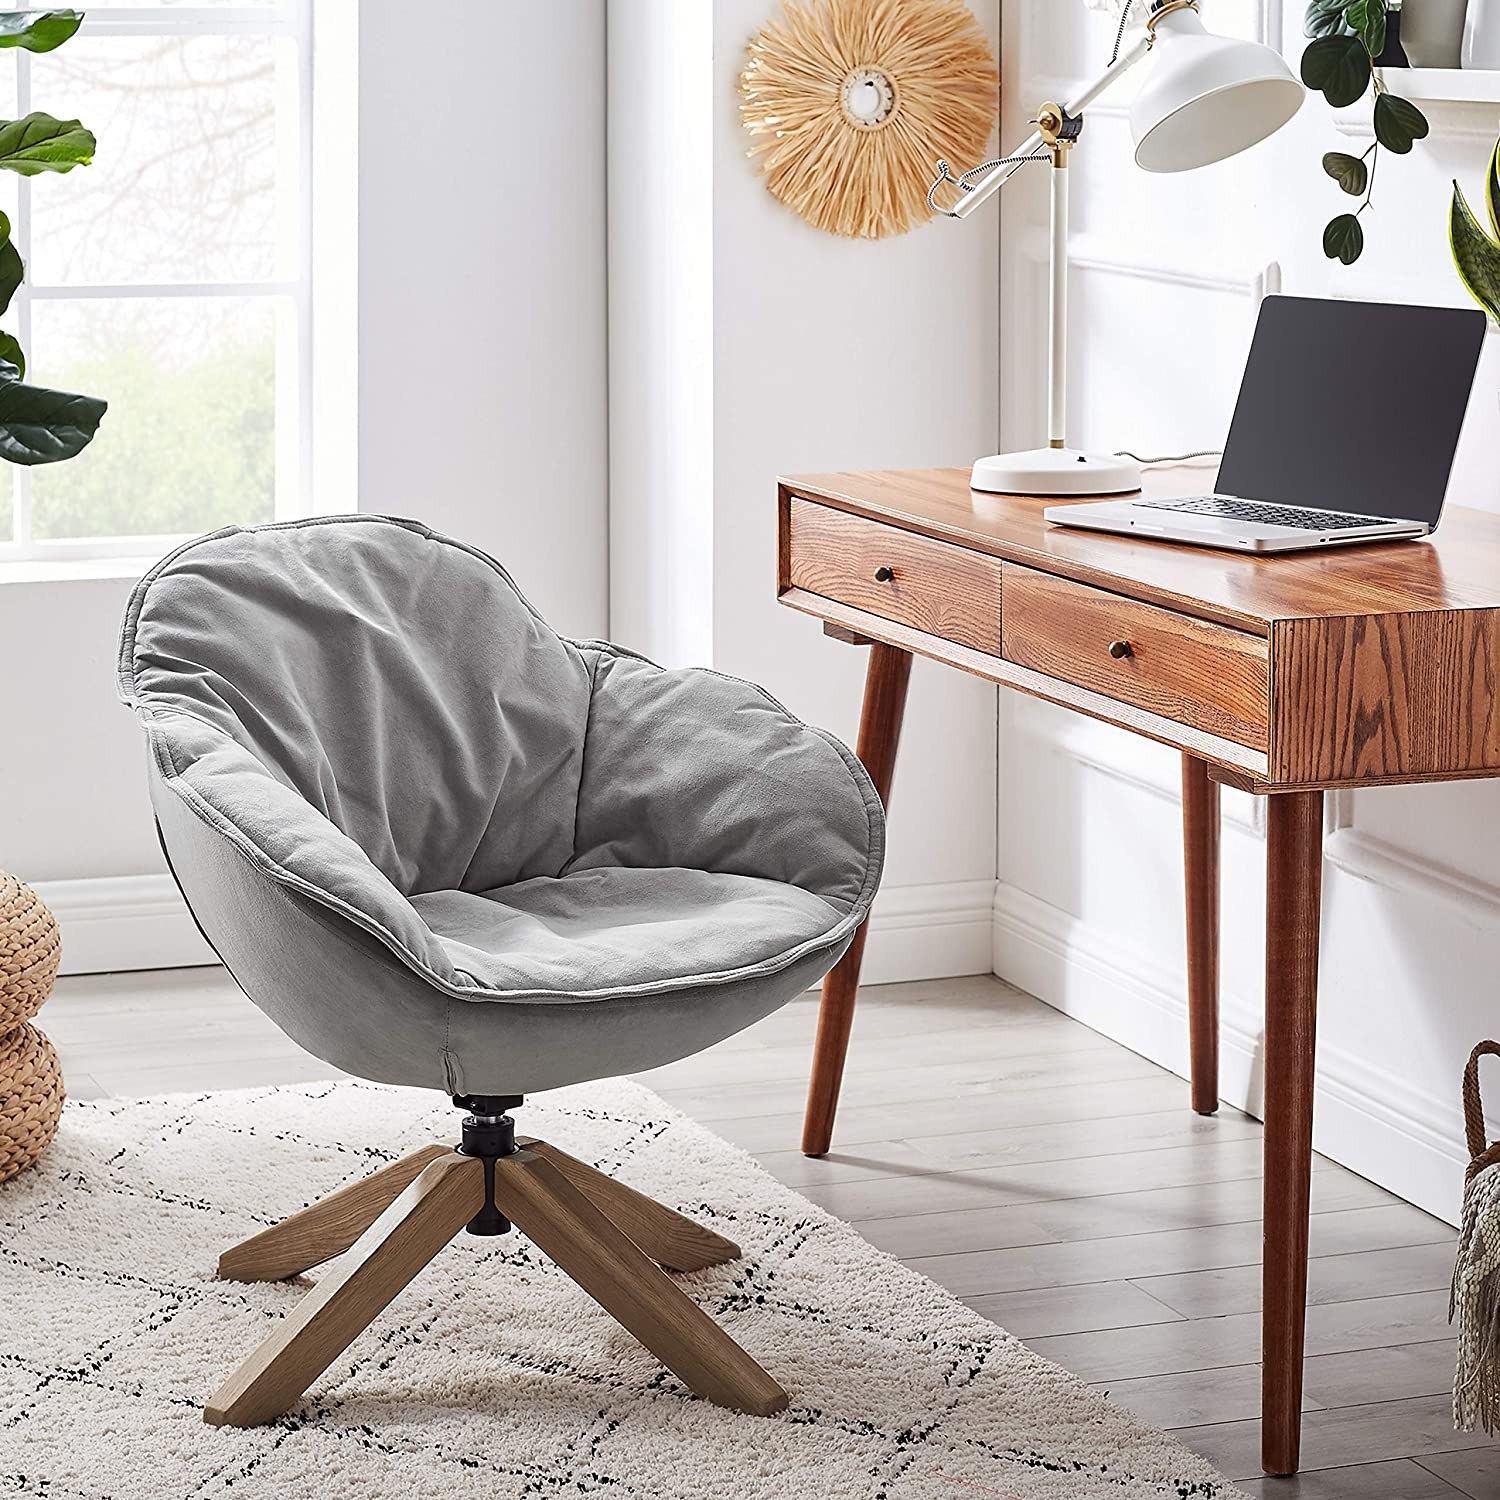 The grey velvet chair which has oak legs and the ability to swivel 360 degrees